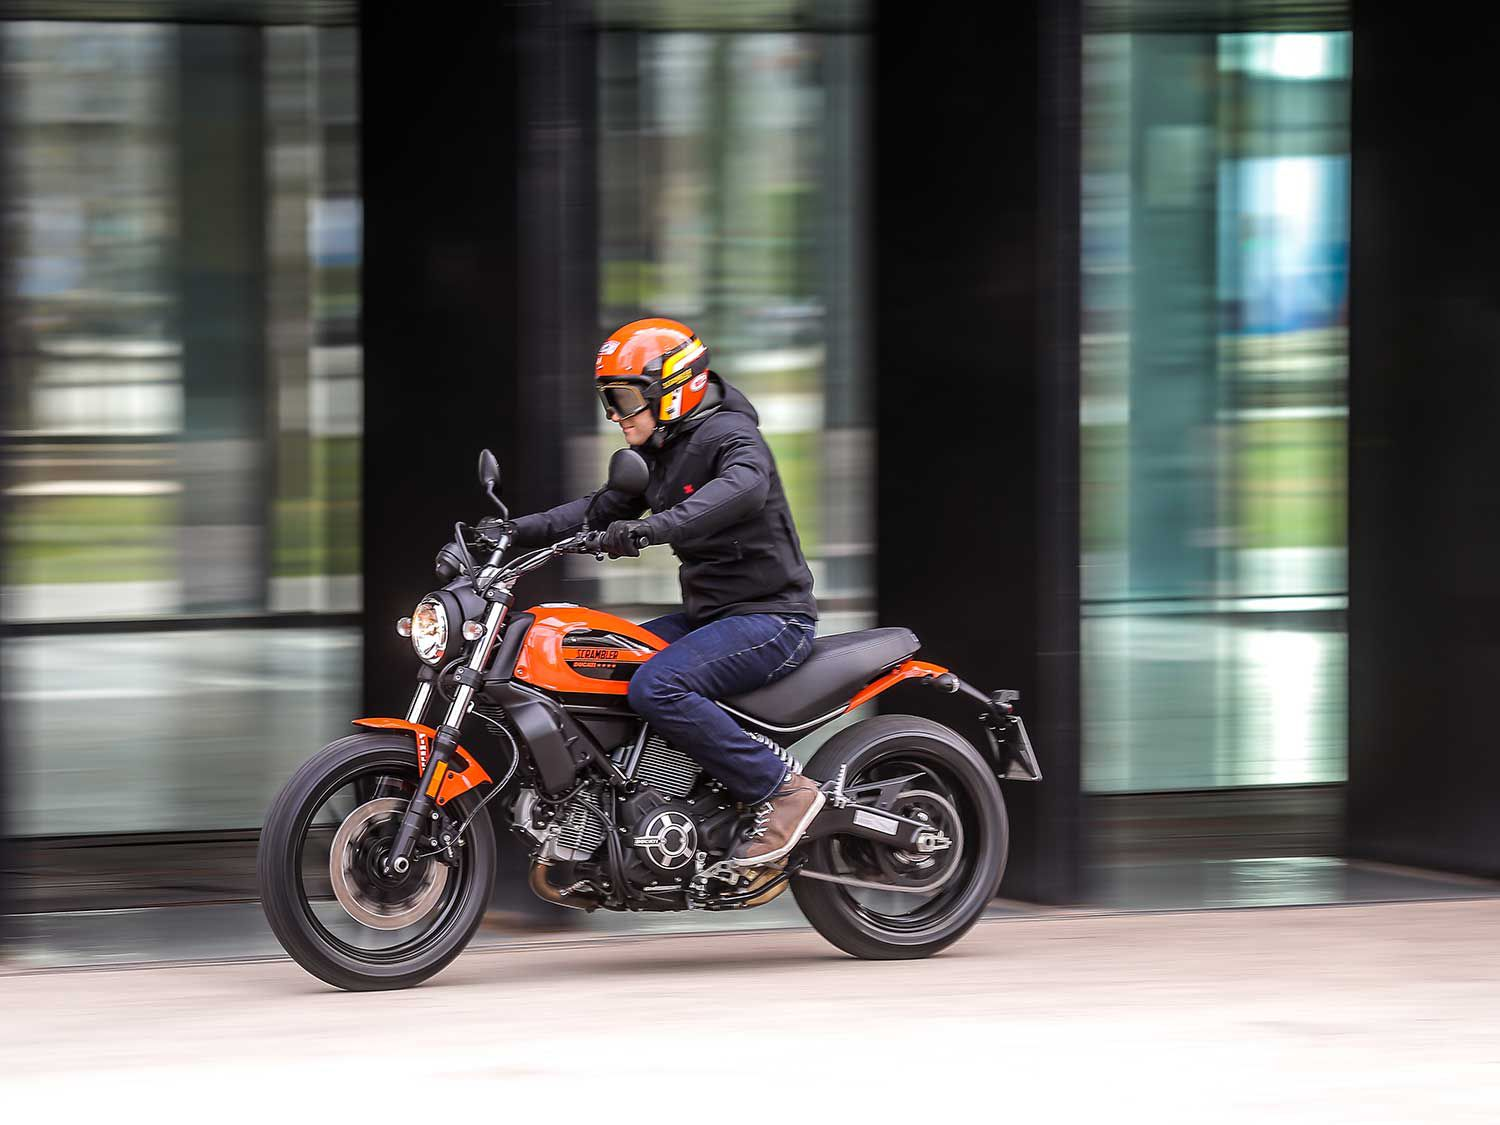 The Ducati Scrambler Sixty2 has unmistakable style.